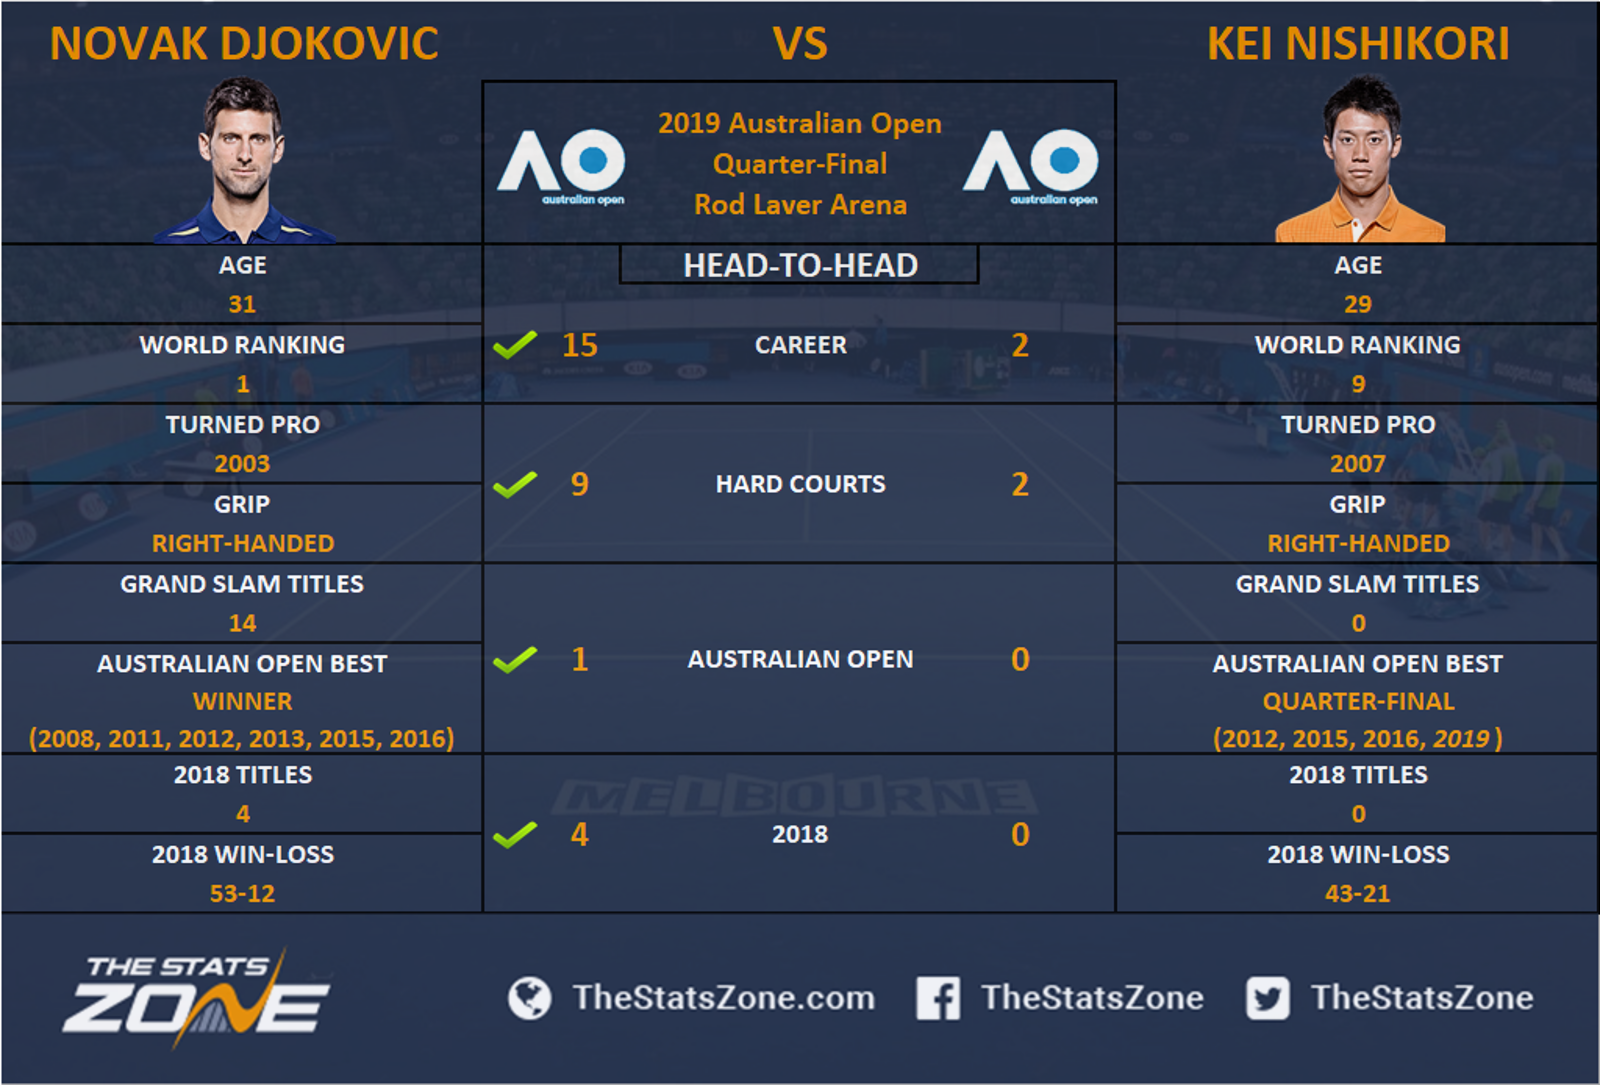 Djokovic vs nishikori betting tips quicksilver sports betting